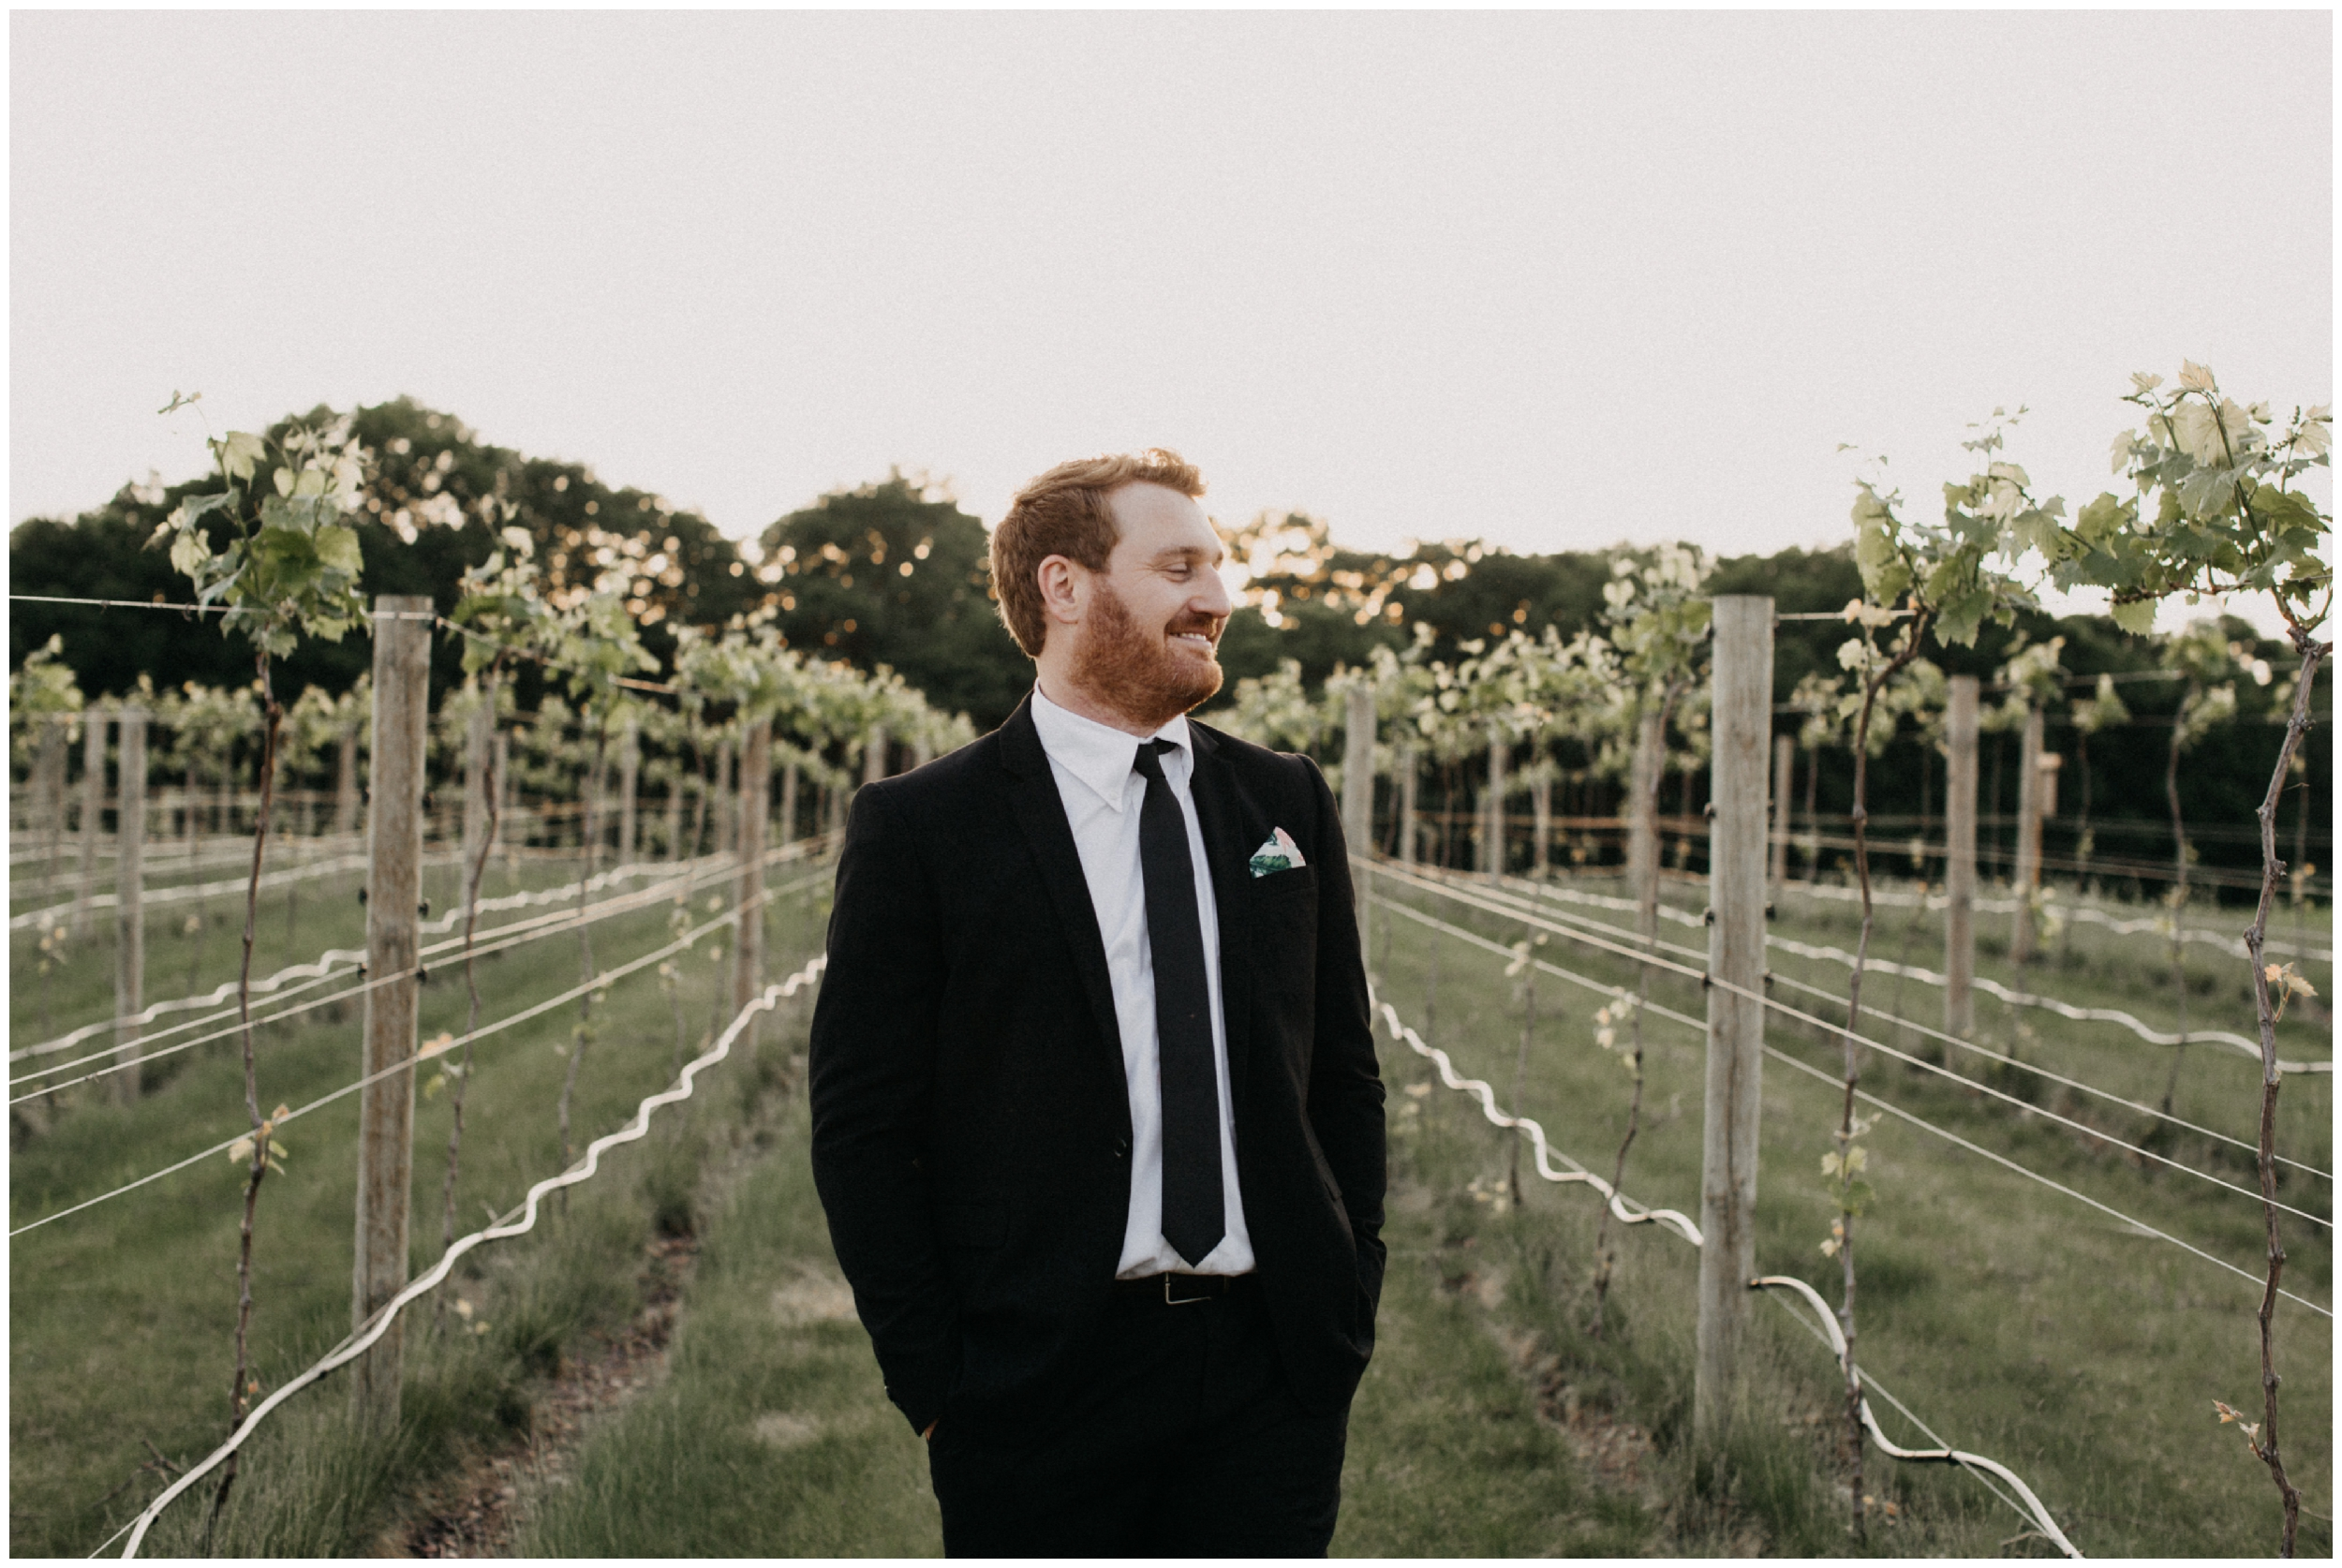 Groom in vineyard at 7 vines winery